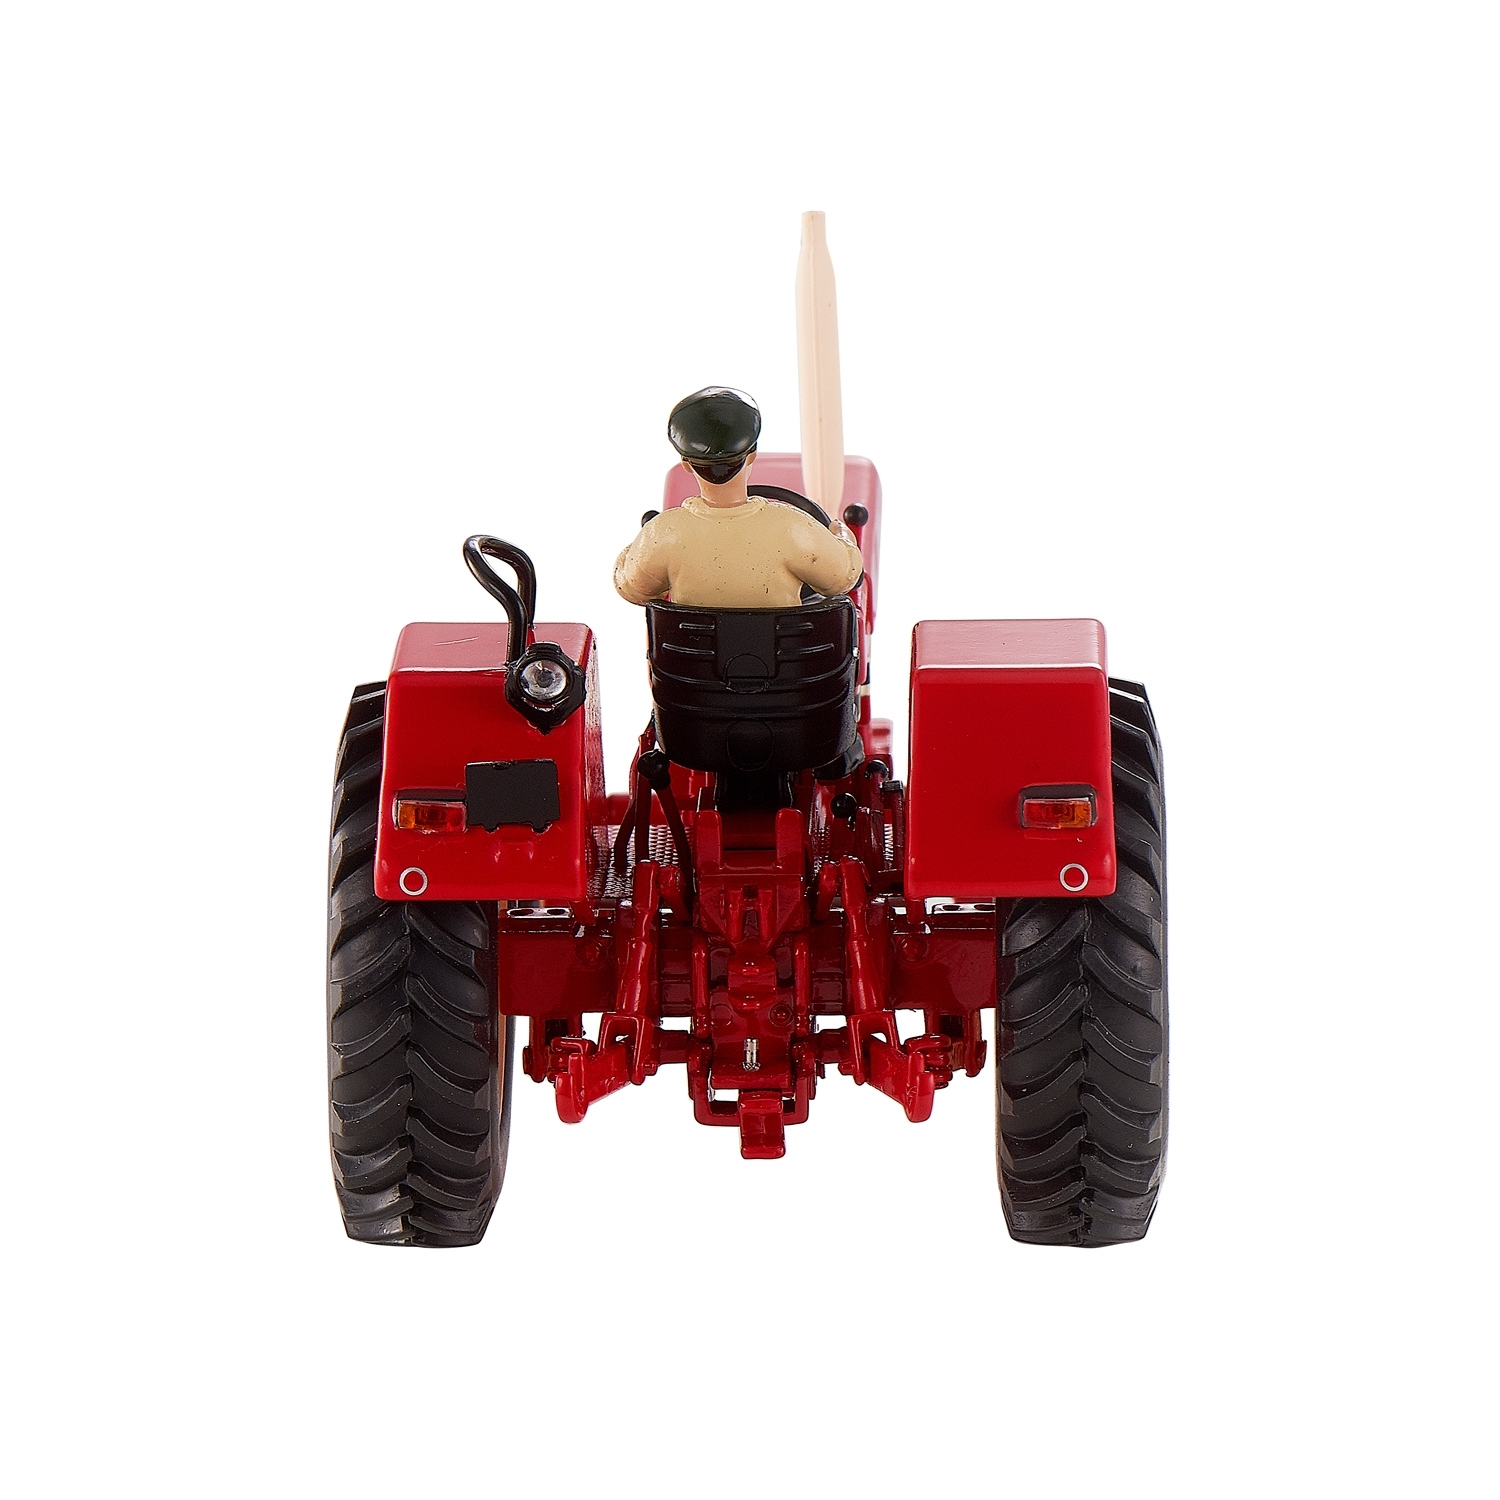 Picture of International Harvester Model 644 Picture of International  Harvester Model 644 ...